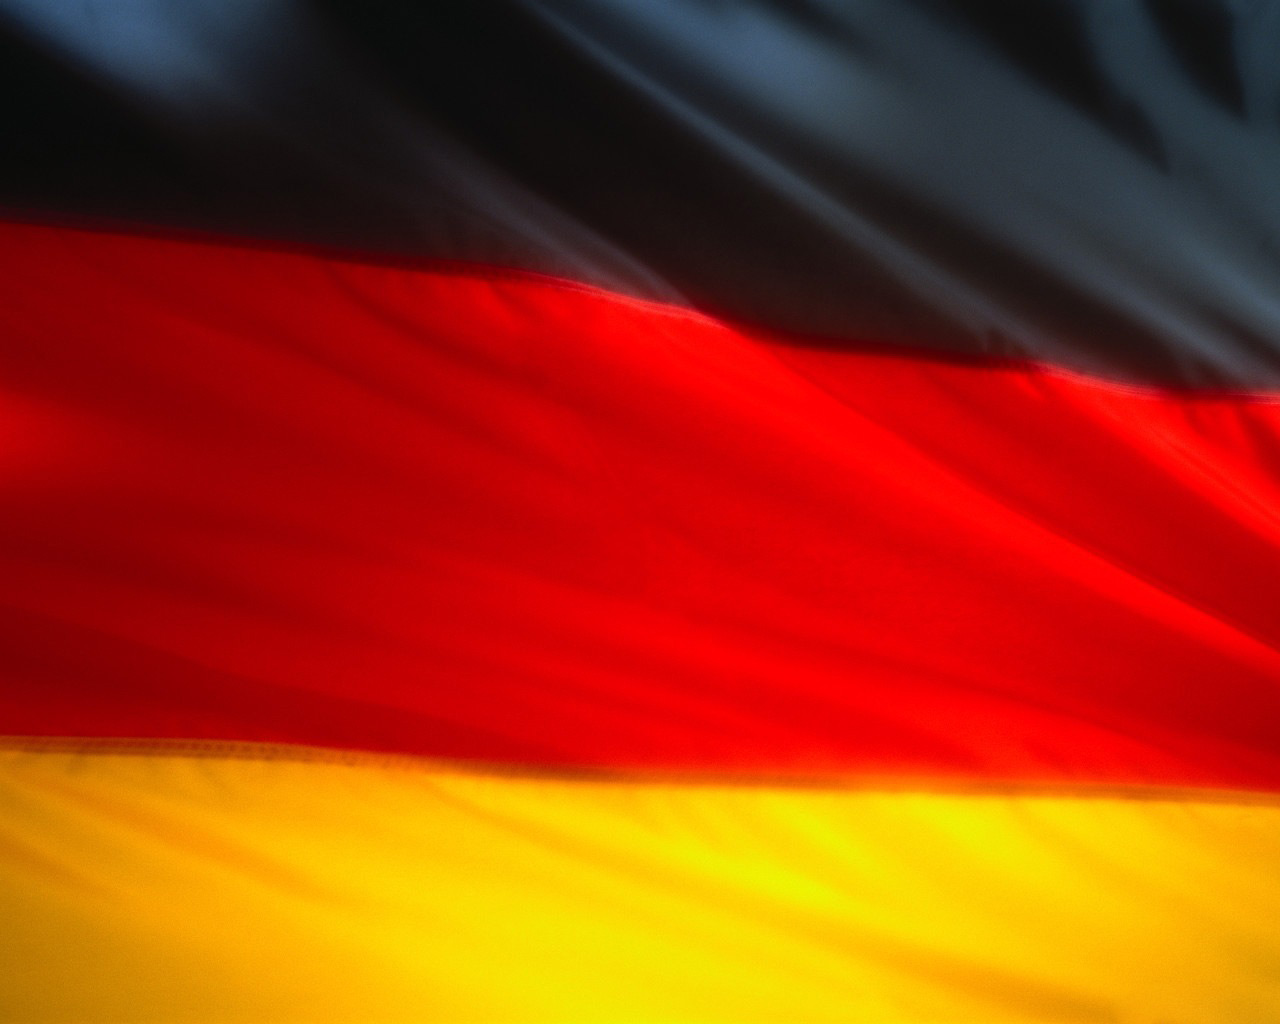 deutschland flag wallpaper - photo #12